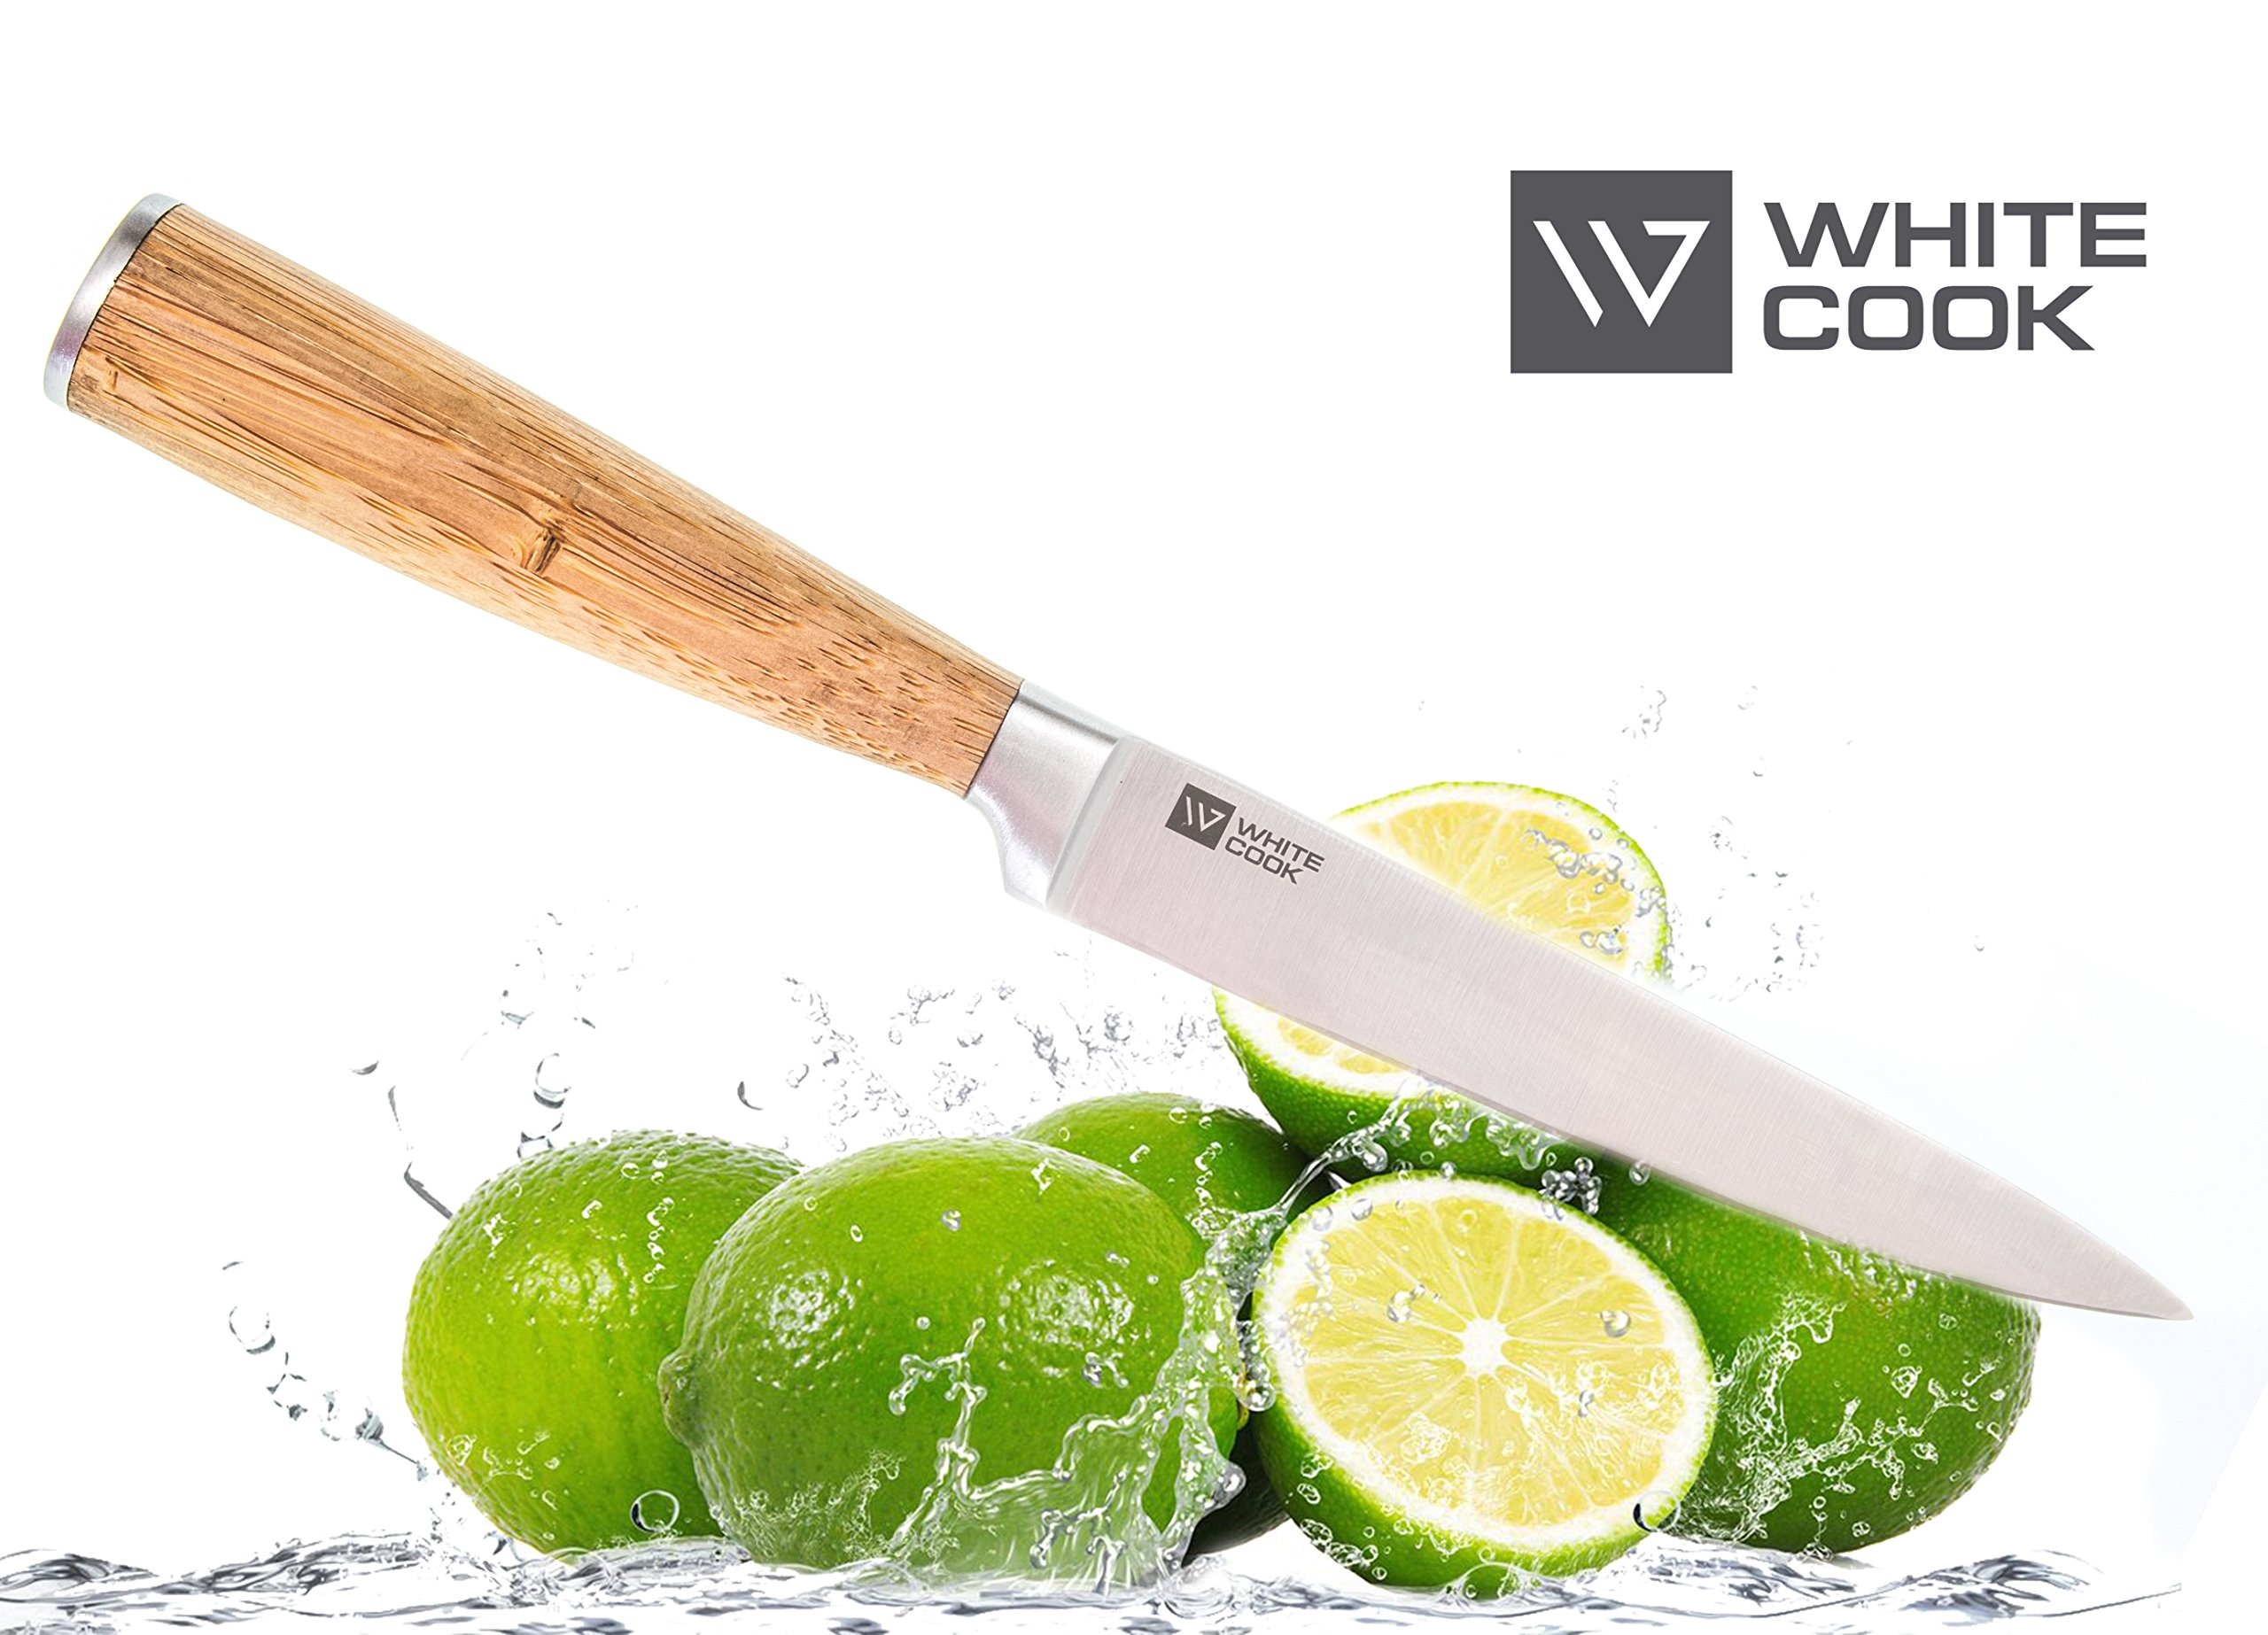 Kitchen Utility Knife 5-inch - Wood Bamboo Handle – Cooking Knives with Super Natural Value - Small Kitchen Knife for Cutting Sandwiches Cooking Fillet Fish Knife - Cutlery Knives Full Tang